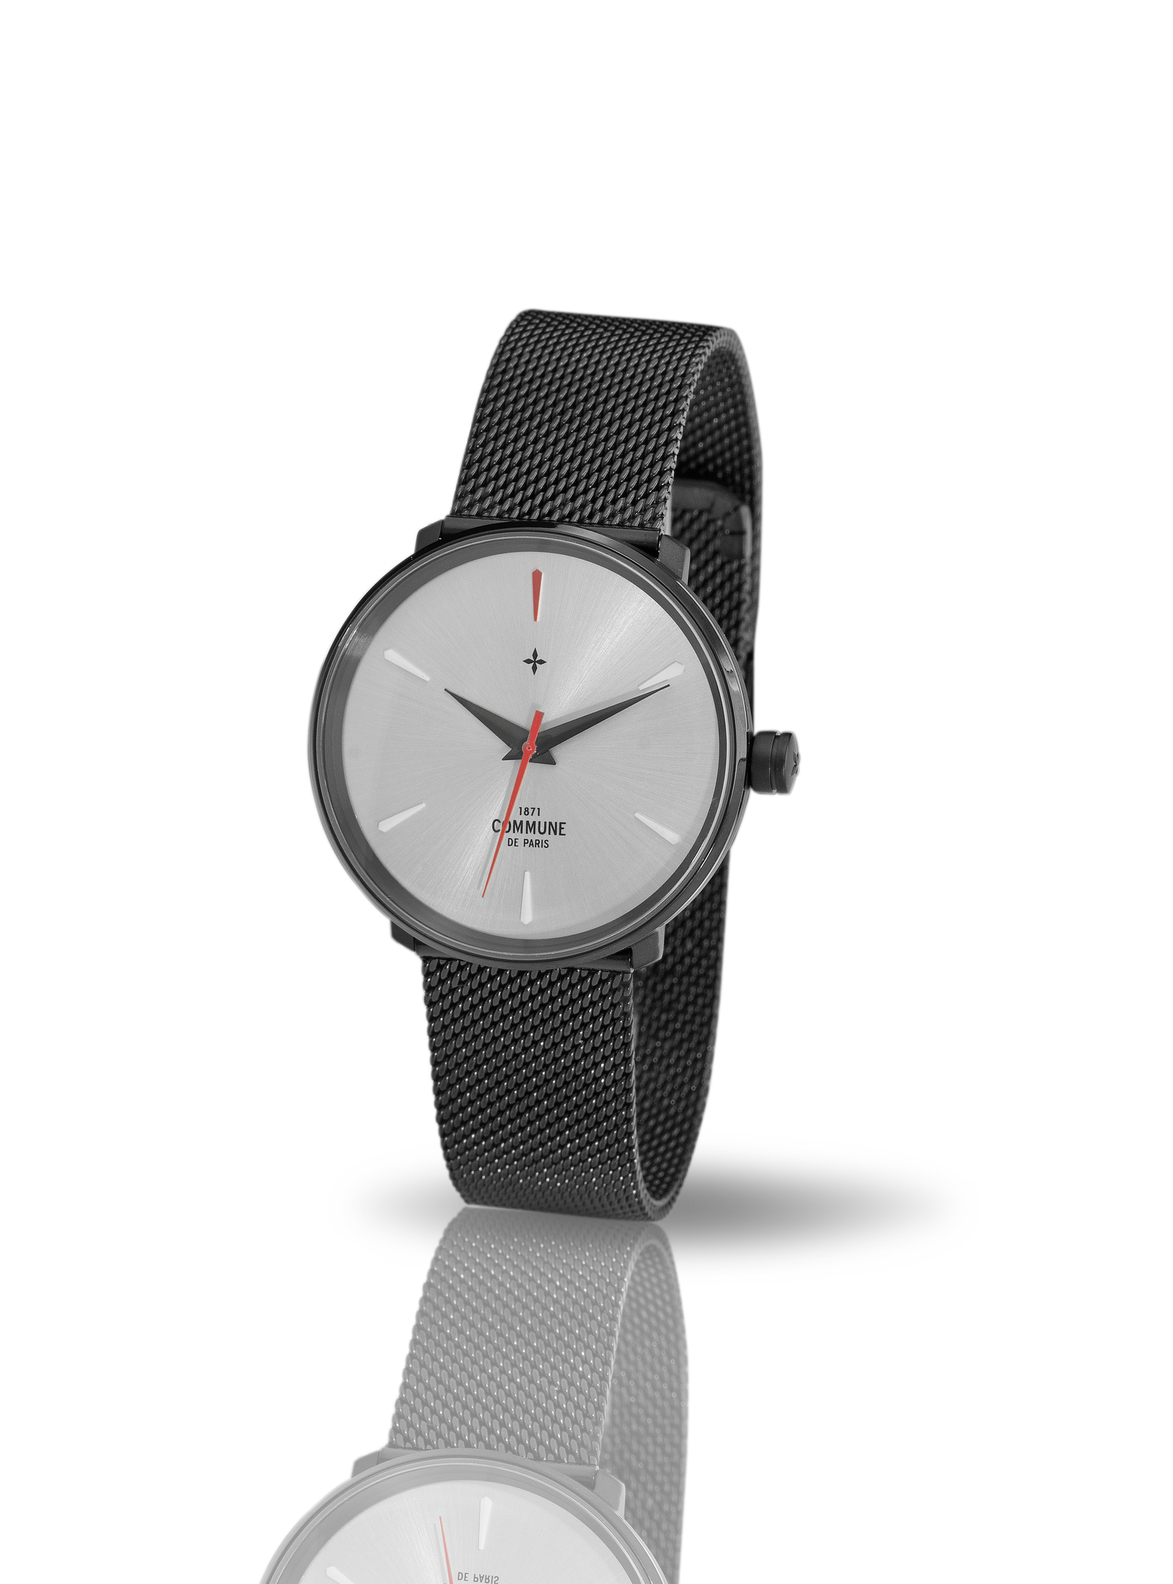 FRIMAIRE WATCH - Mb black